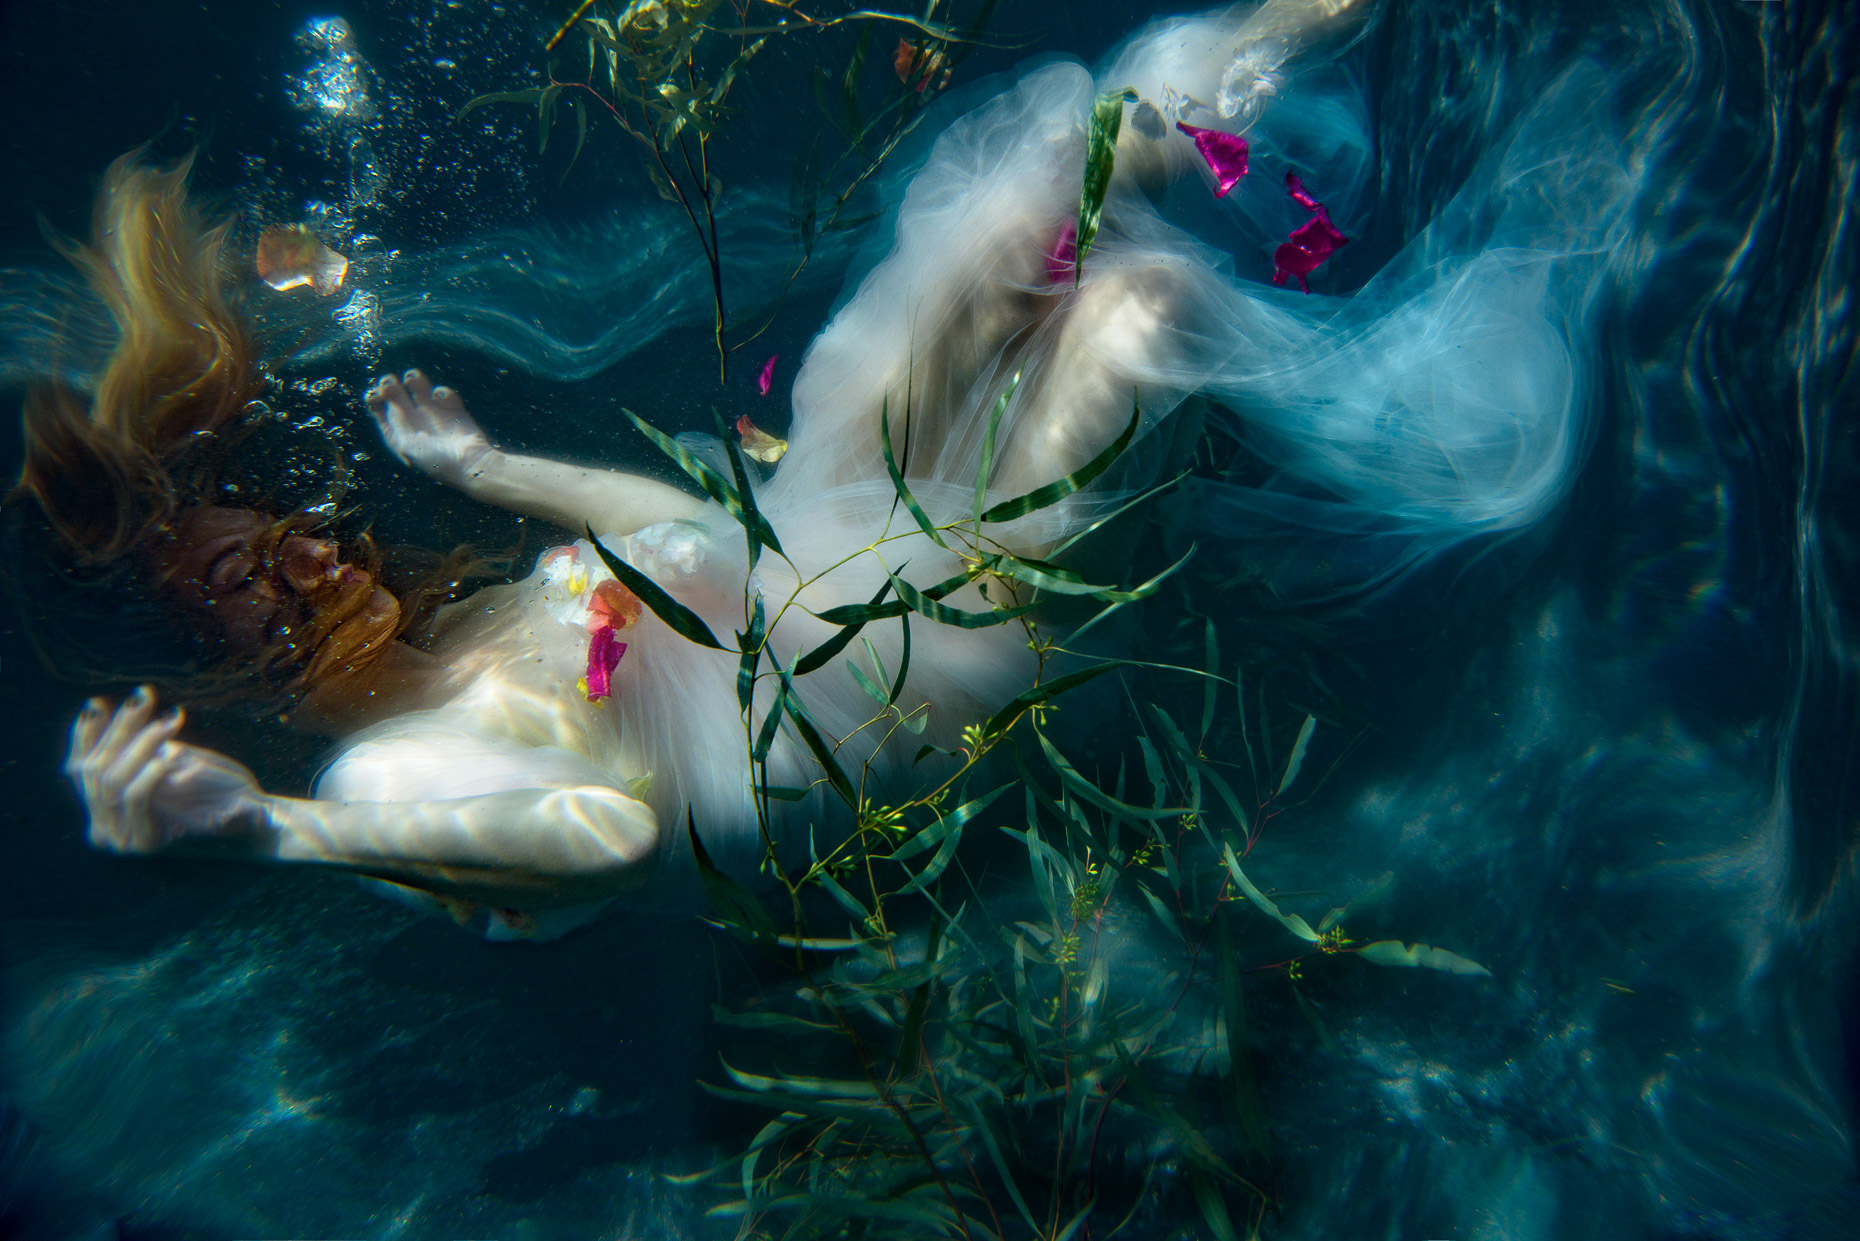 Portrait underwater woman in white dress with plants and flowers